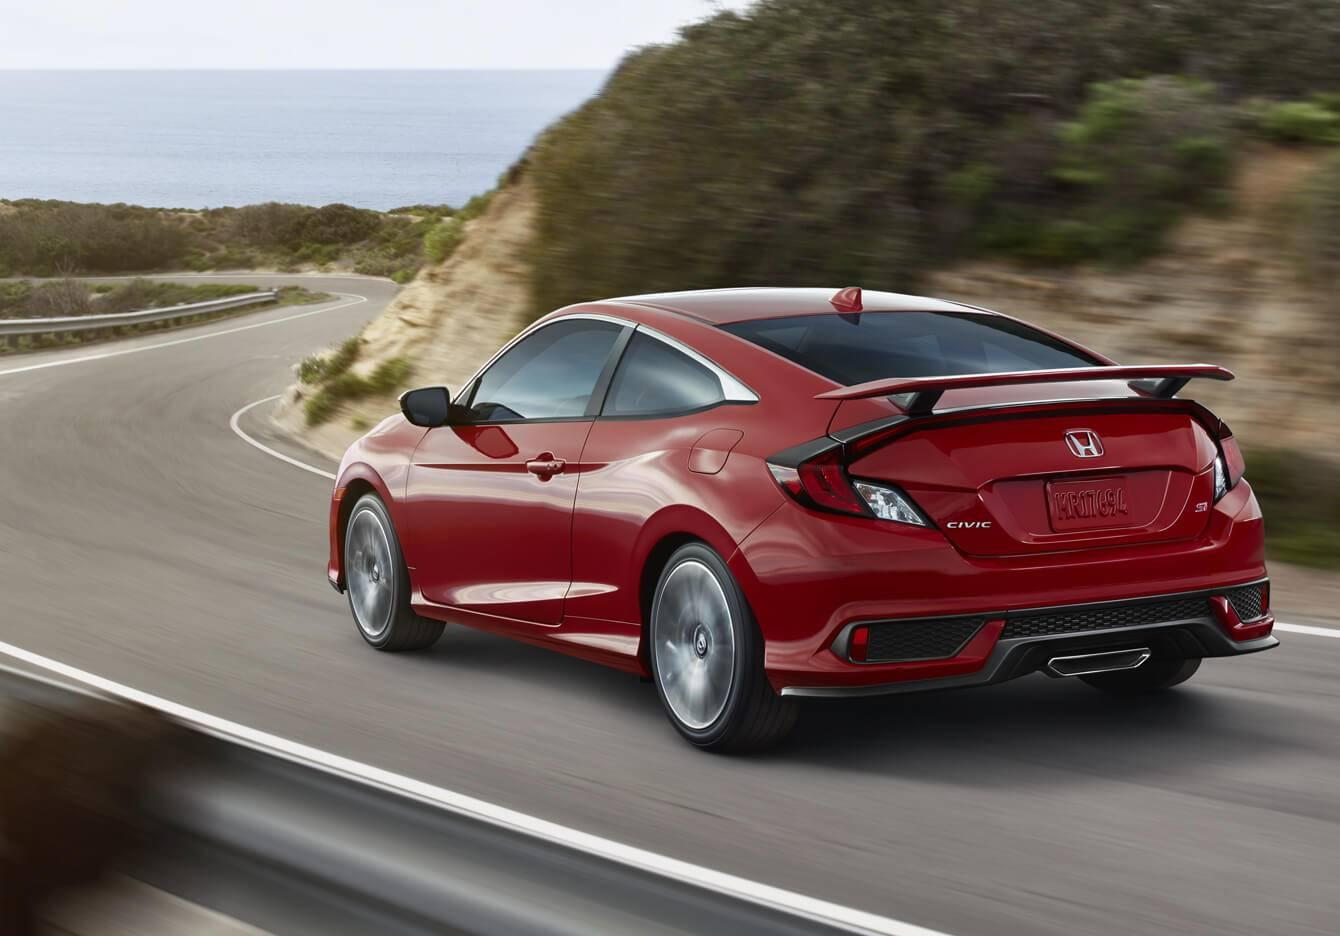 2017 Honda Civic Si Coupe Exterior Rear Angle Drive